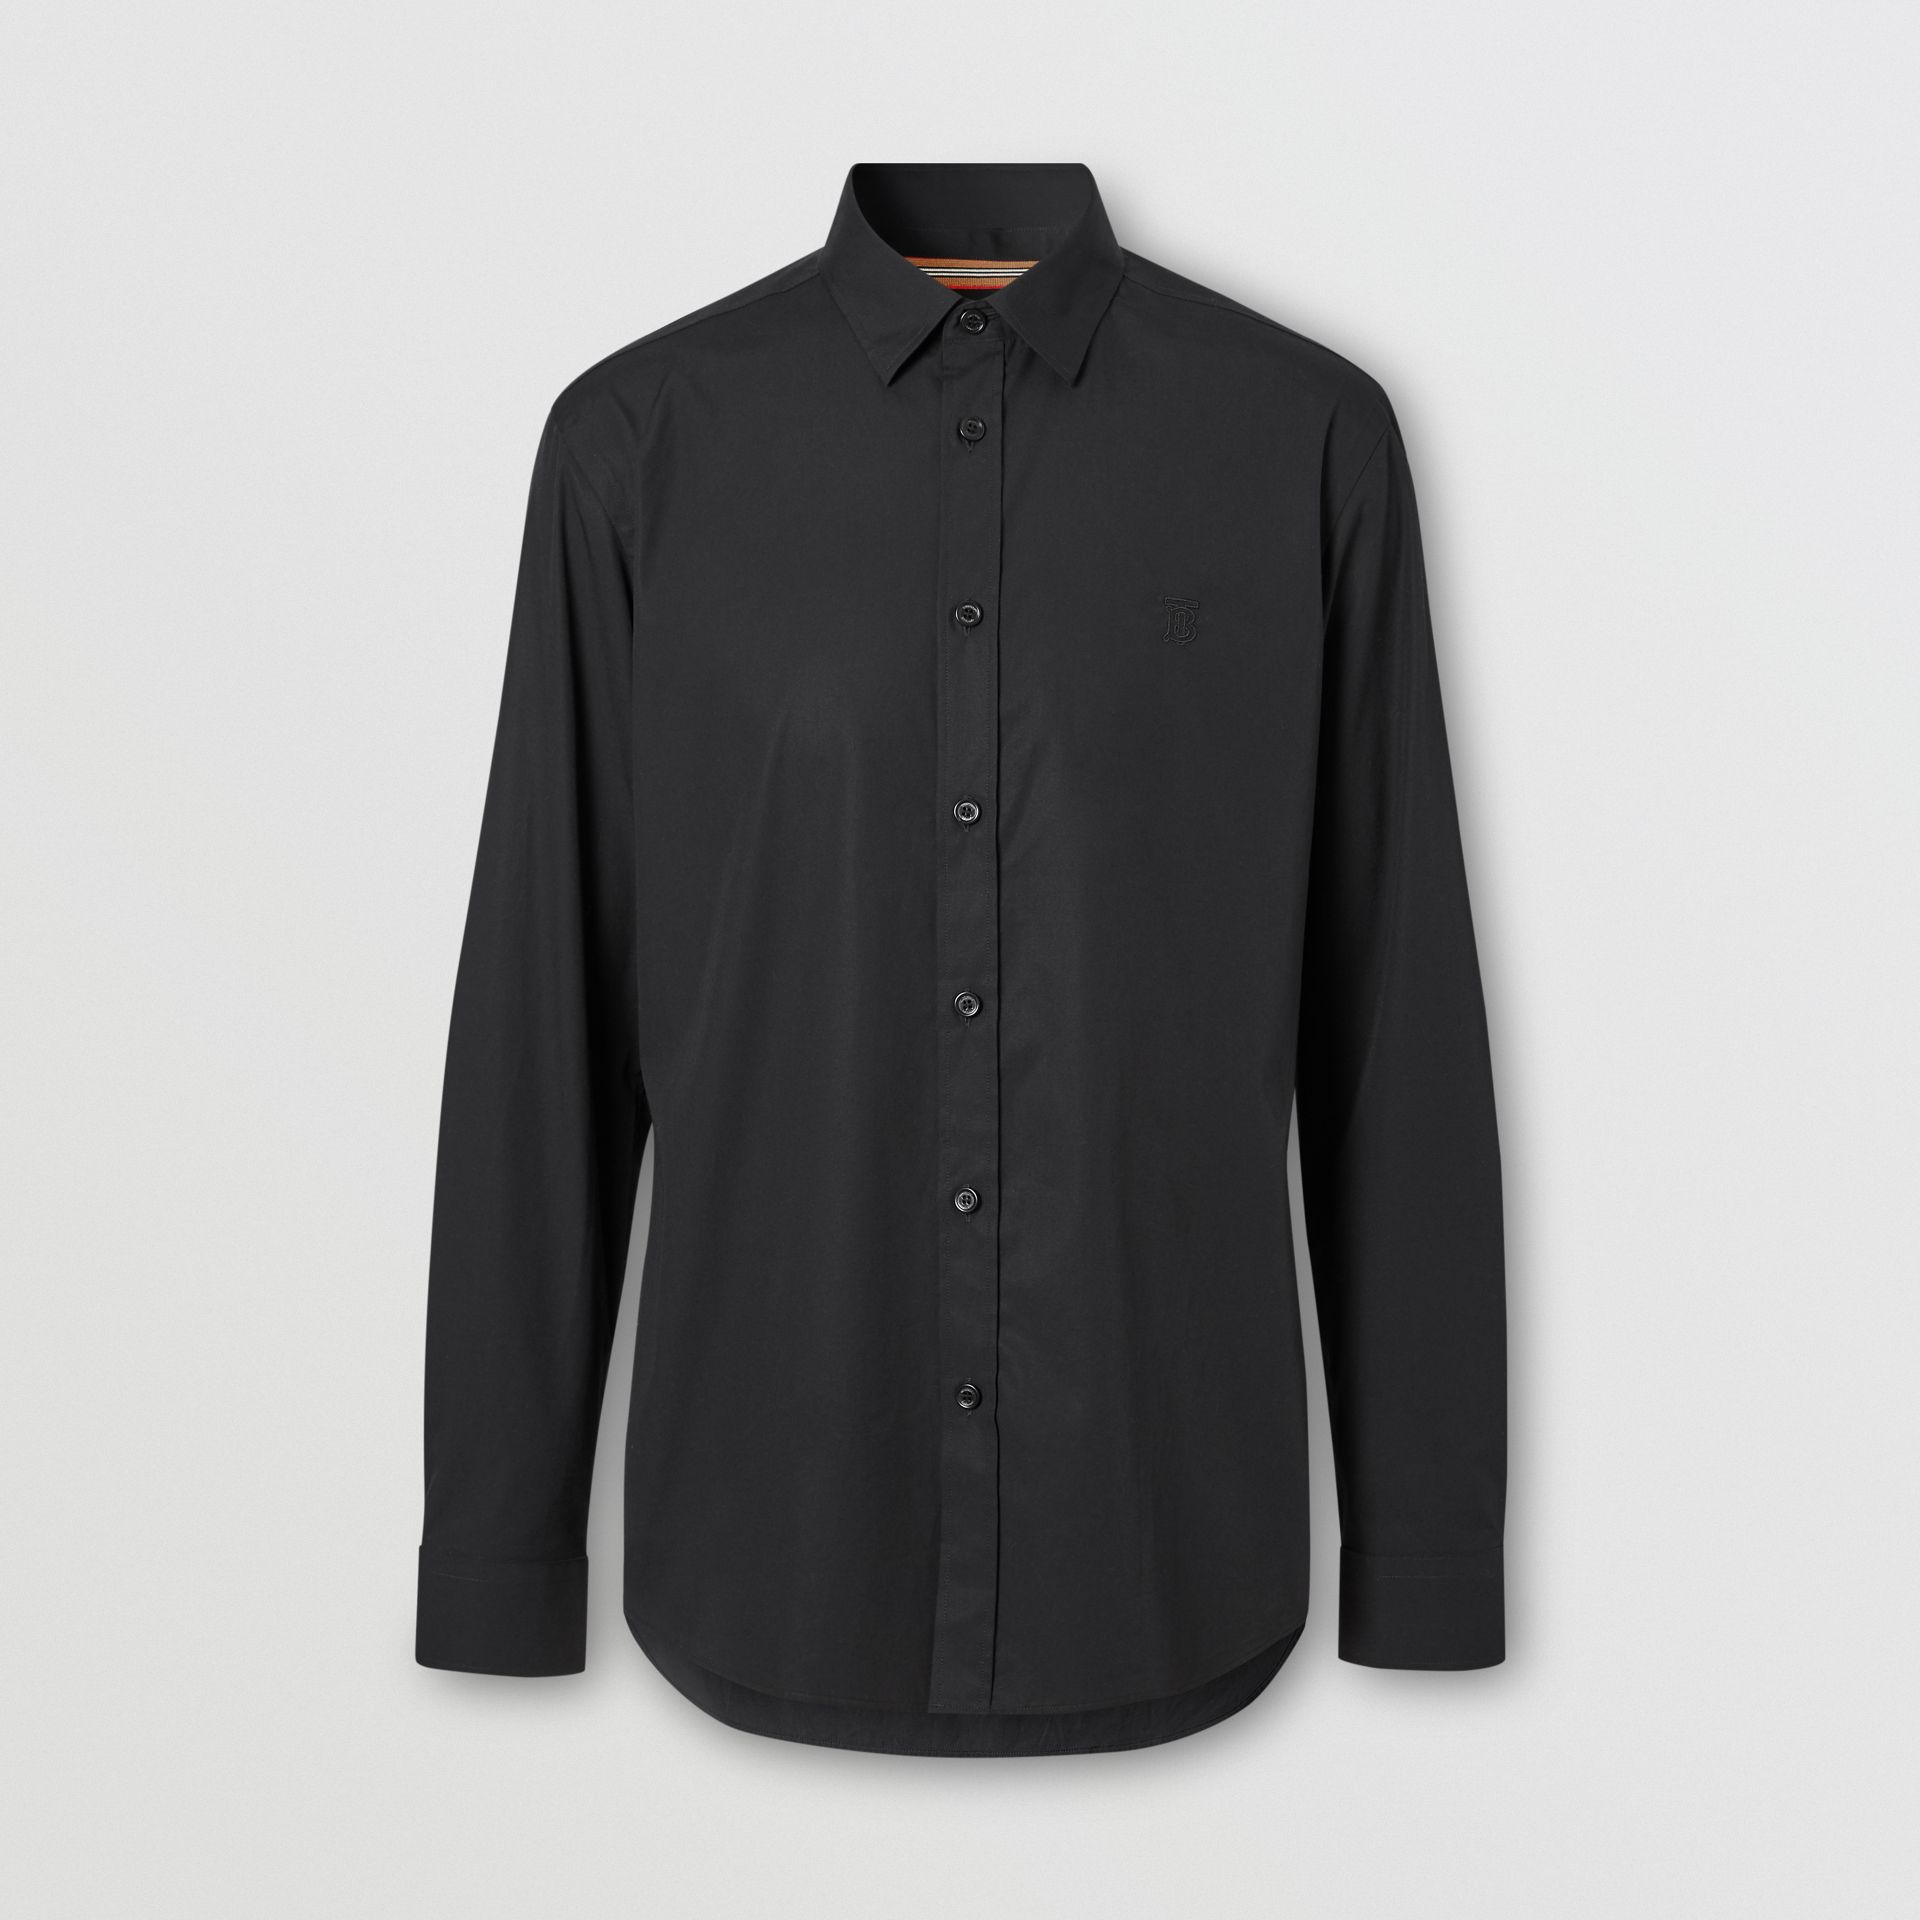 Monogram Motif Stretch Cotton Poplin Shirt in Black - Men | Burberry United States - gallery image 3